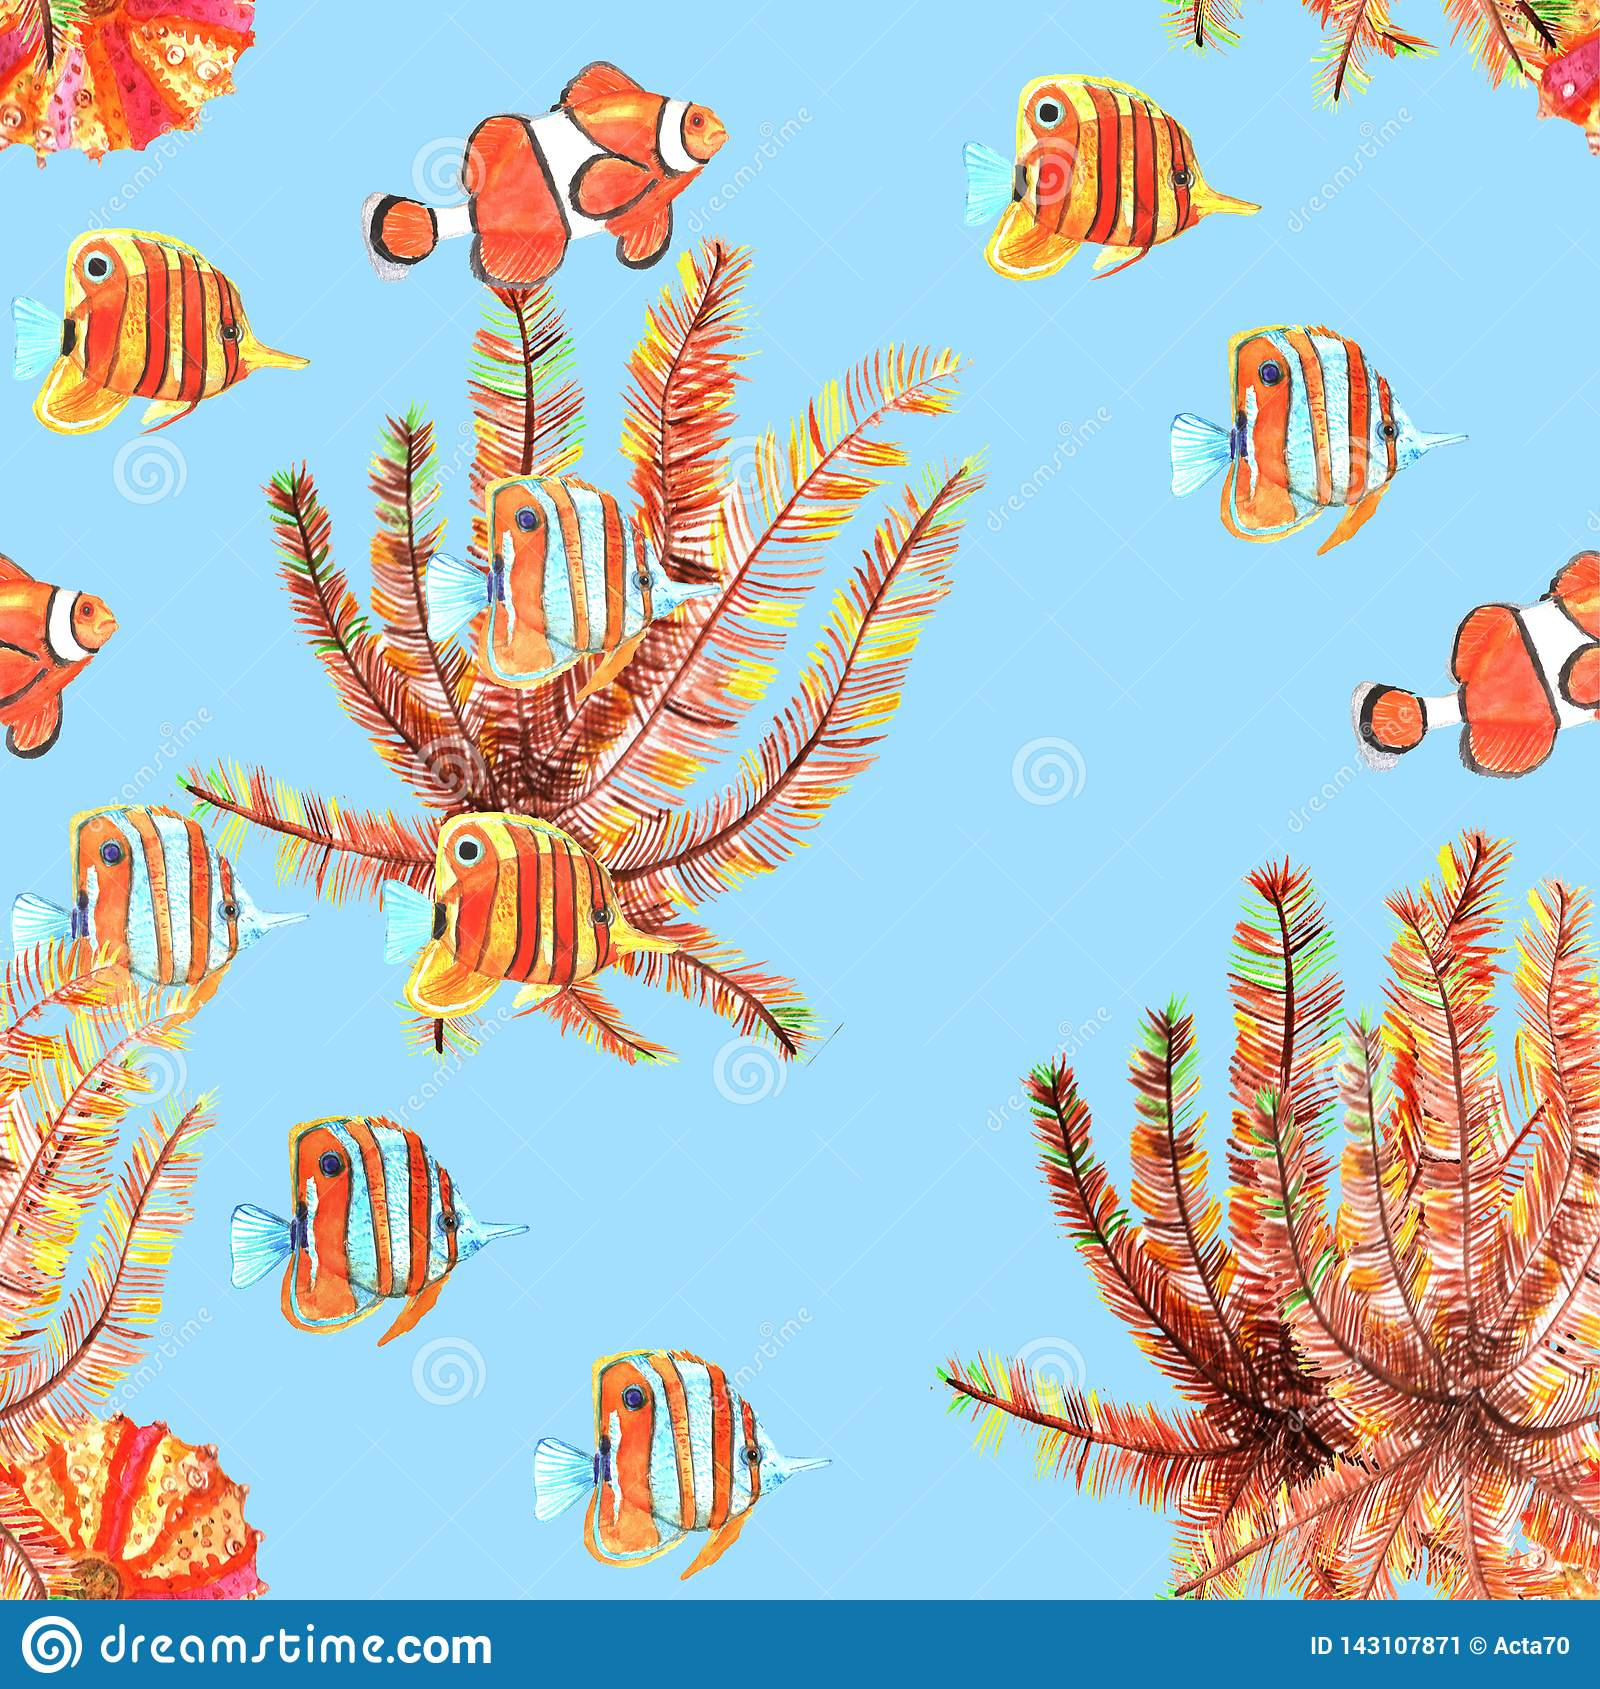 Seamless pattern with fishes. Clownfish, butterflyfish. Watercolor